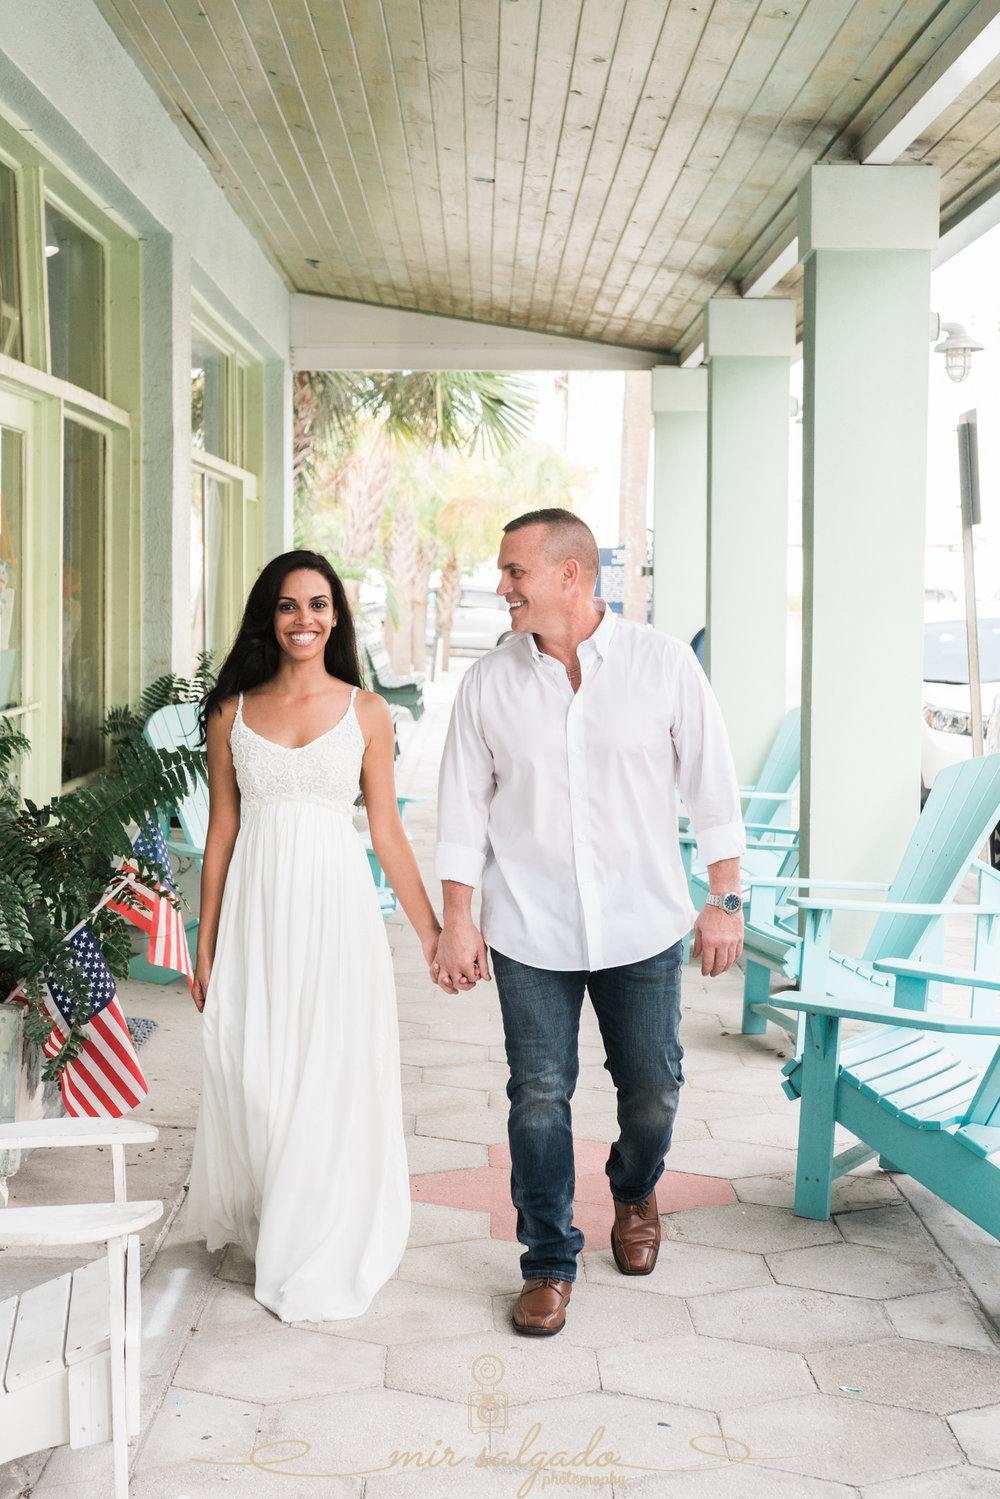 off-guard-engagement-pictures, tampa-engagement-pictures, tampa-wedding-photographer